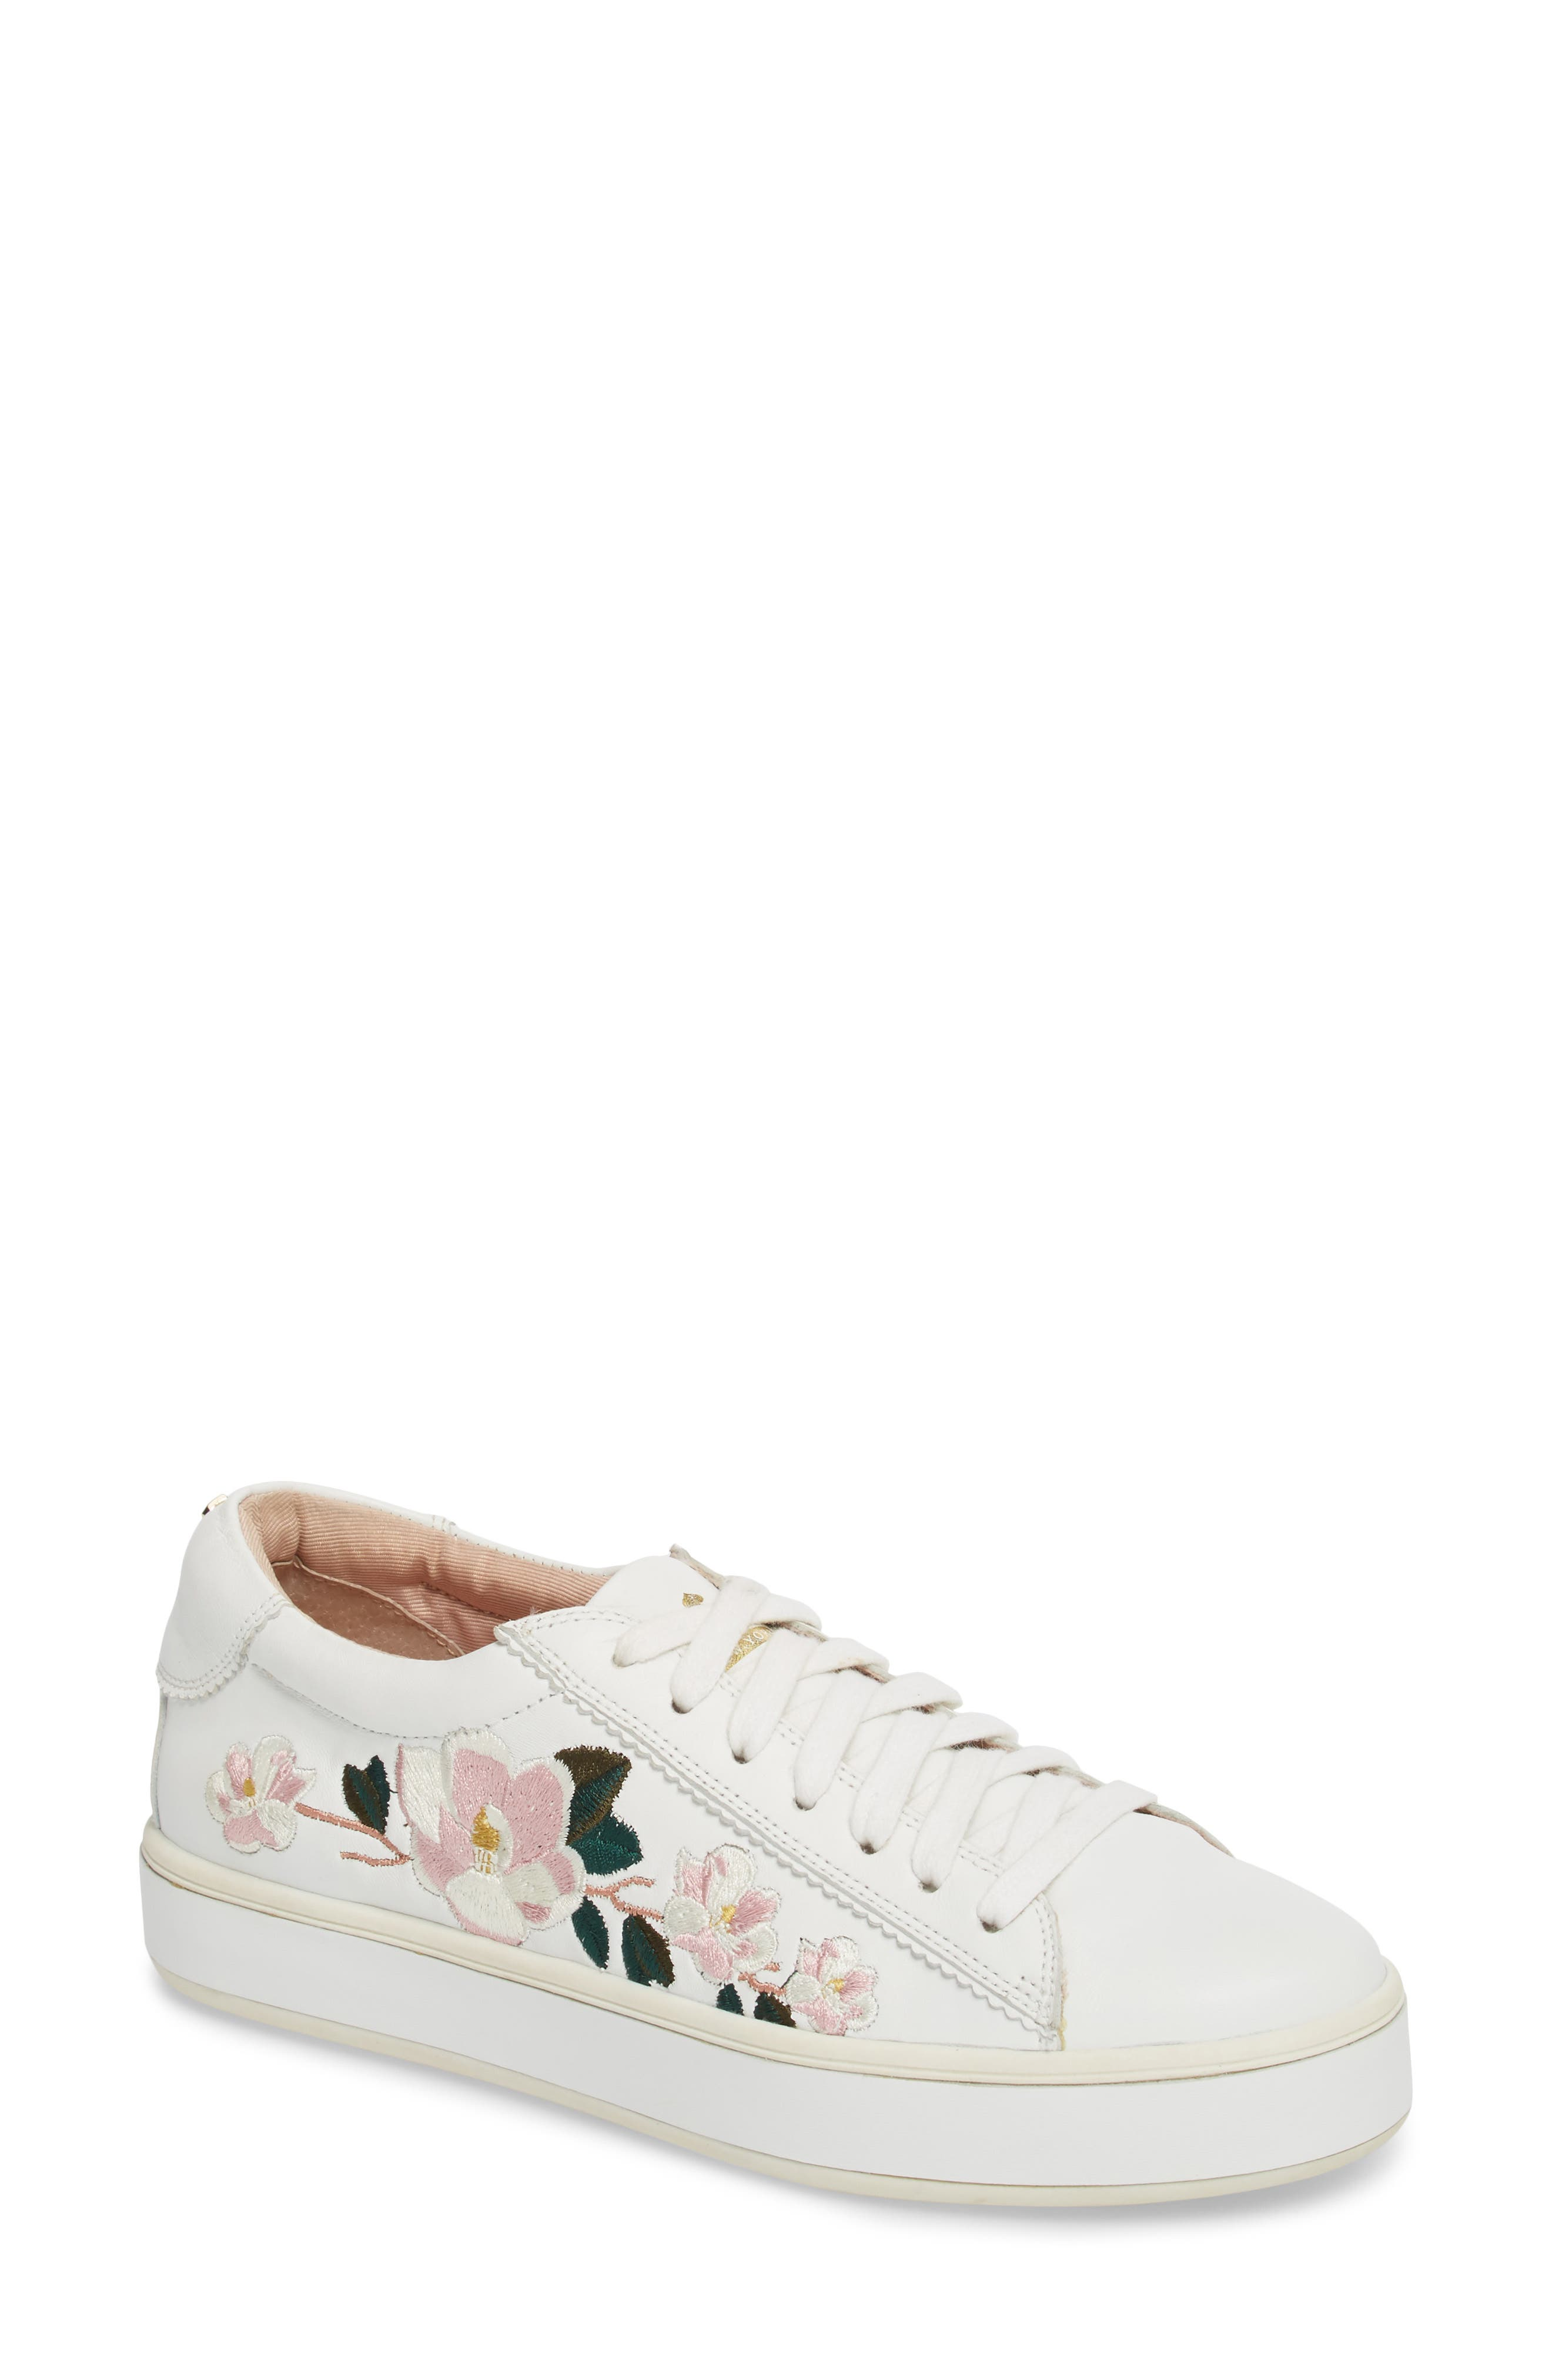 kate spade new york amber embroidered sneaker (Women)